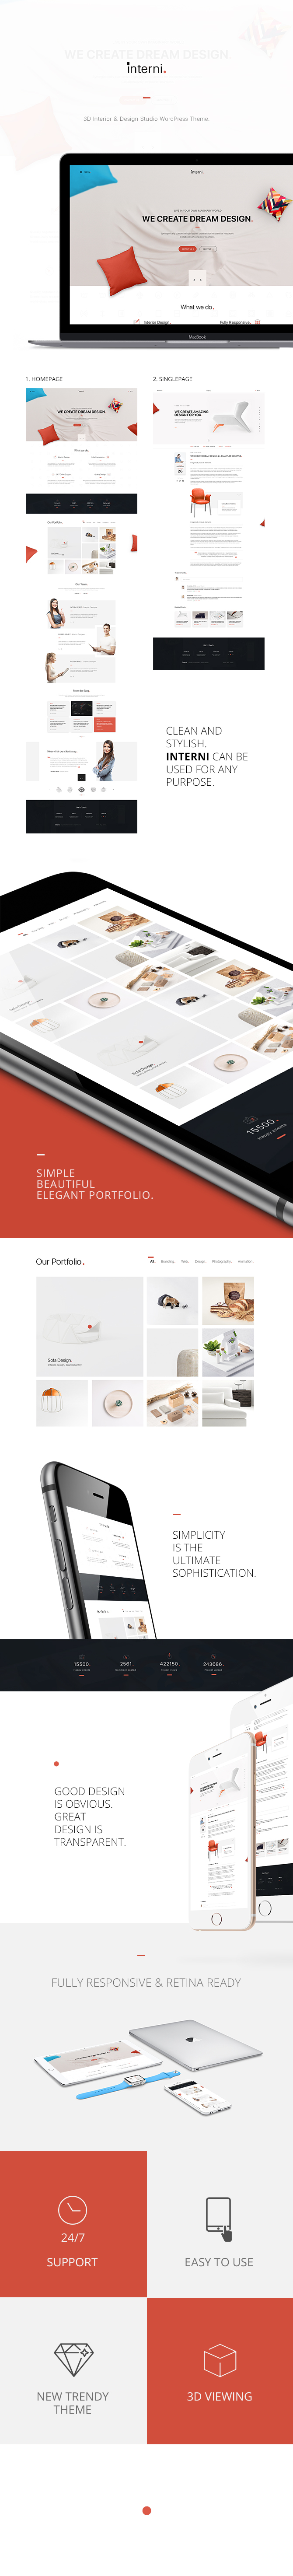 Interni 3d interior design studio wordpress theme by for Interni design studio